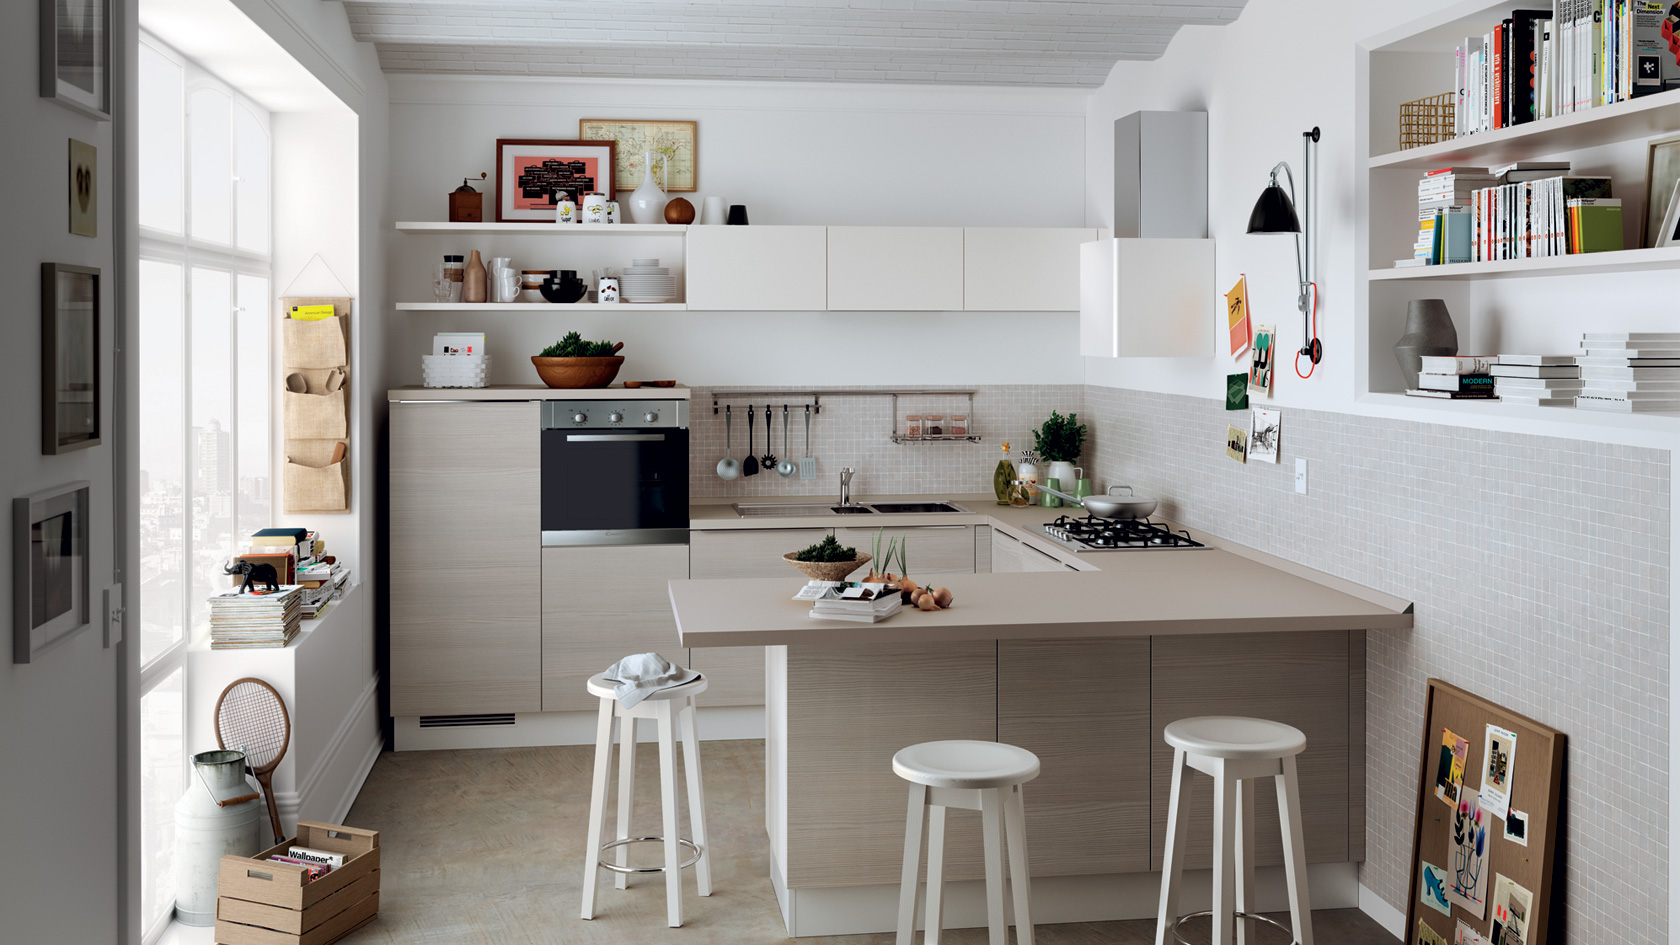 Cucine Scavolini 2015 open space